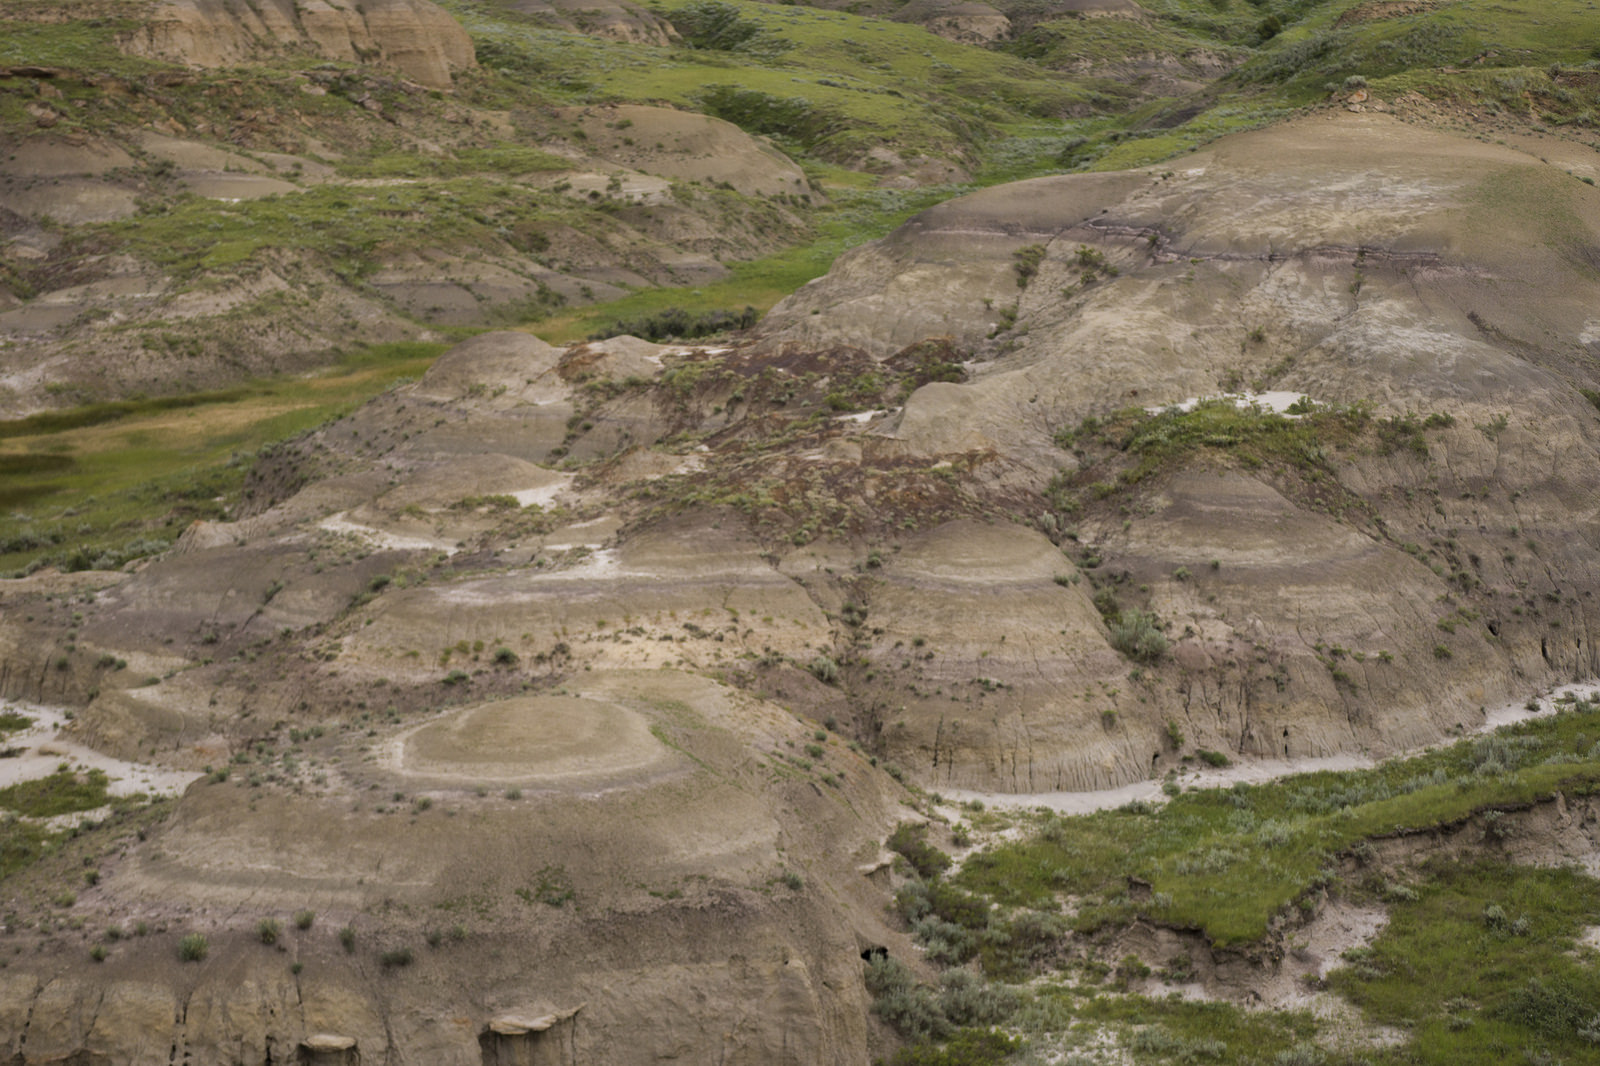 Sandstone buttes and outcrops in the Killdeer Badlands (aka Rock Creek badlands) expose layers of sediment that mark 60 million years of geological history. The darkest colouring marks the    Creataceous-Paleogene boundary   , seen at higher elevations in the grasslands and nearby sites such as    Zahursky Point   .